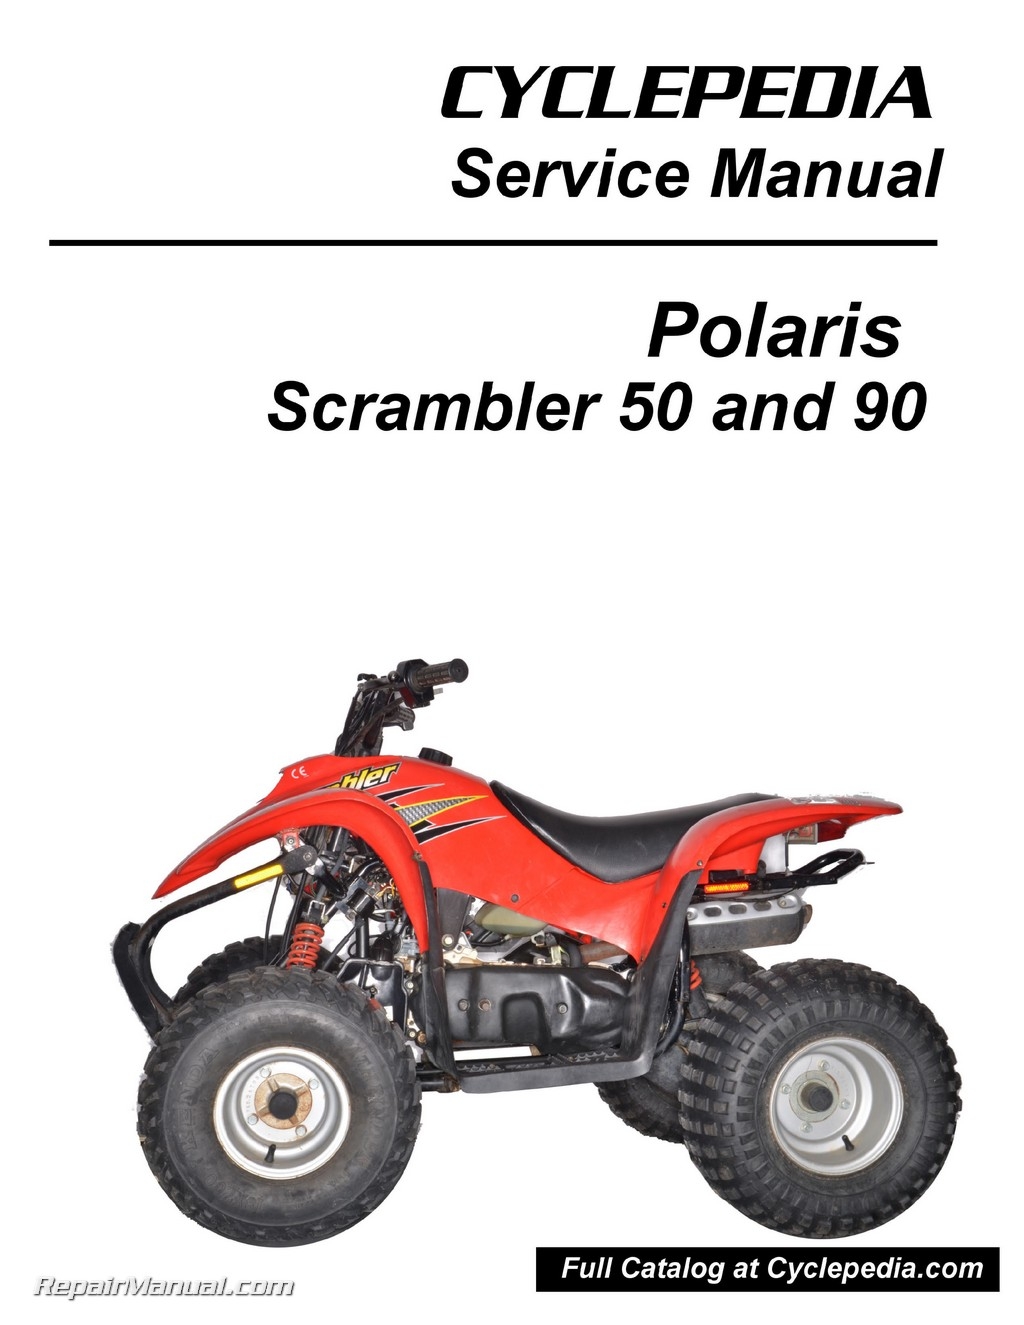 1999 polaris scrambler 500 4x4 wiring diagram images polaris carburetor diagram in addition polaris scrambler 400 wiring